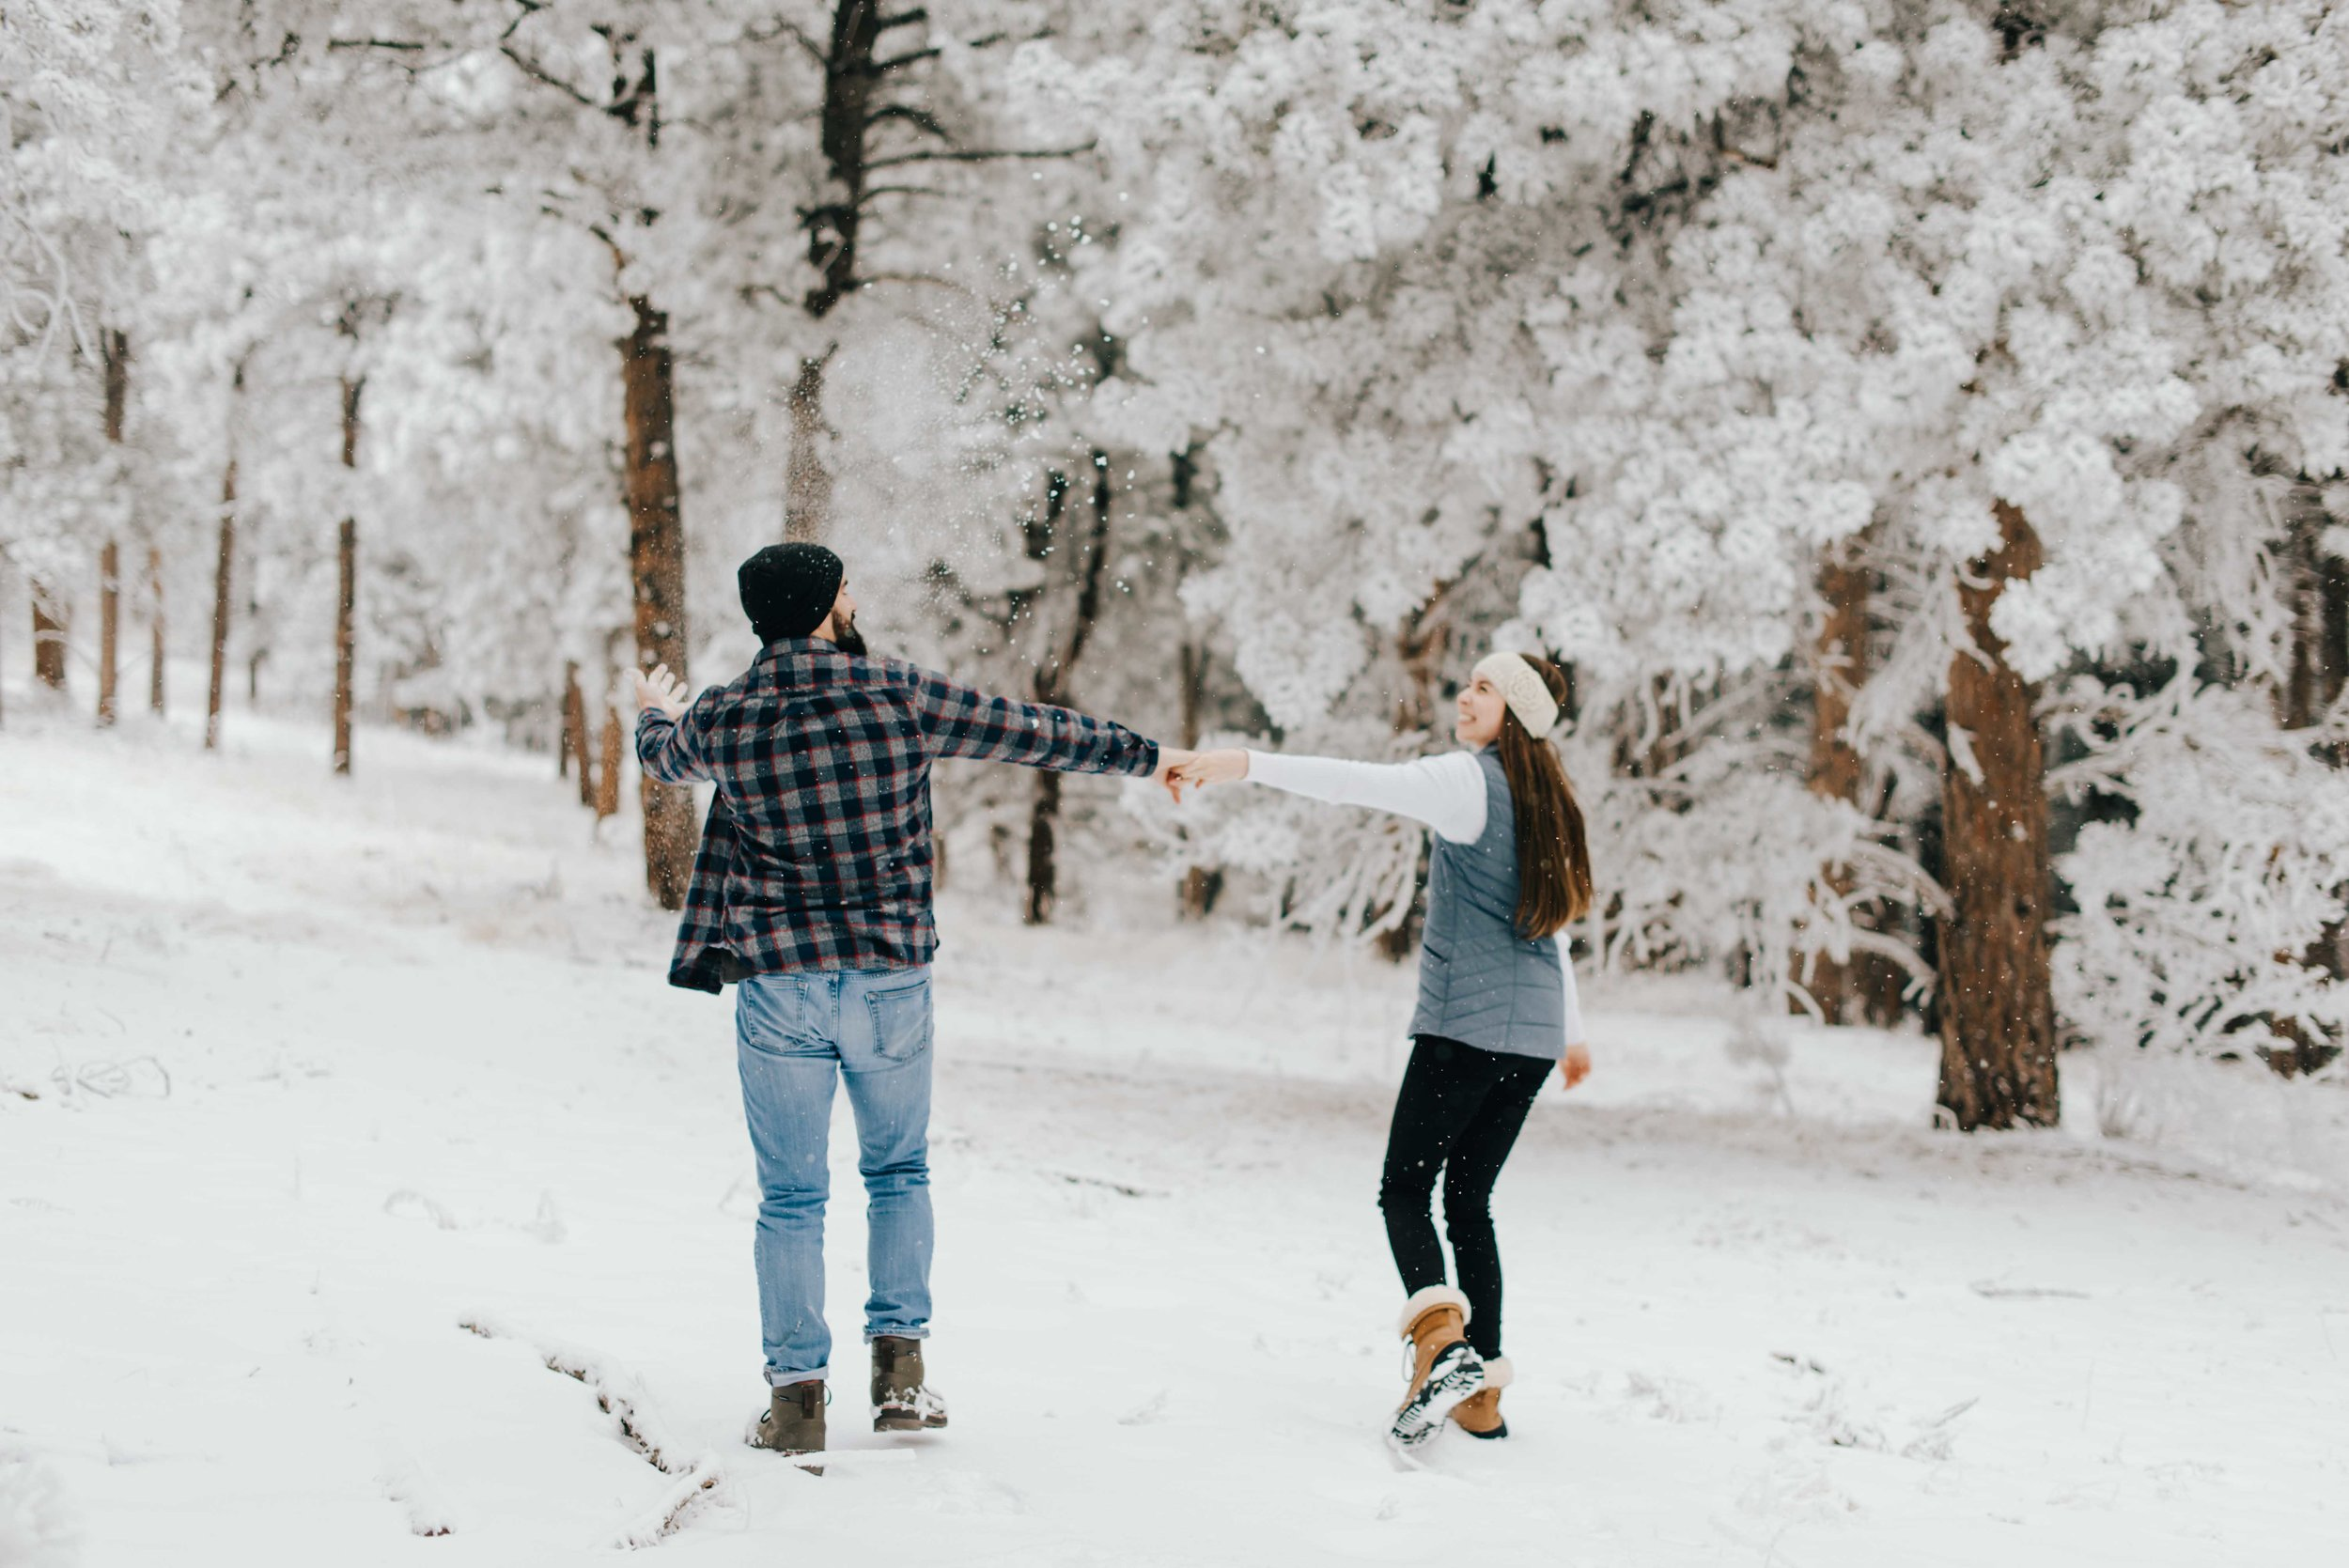 Nik and Tani playing in the snow during their mountain engagement session in Golden, Colorado. The weather was cold and snowy, but they totally embraced it!